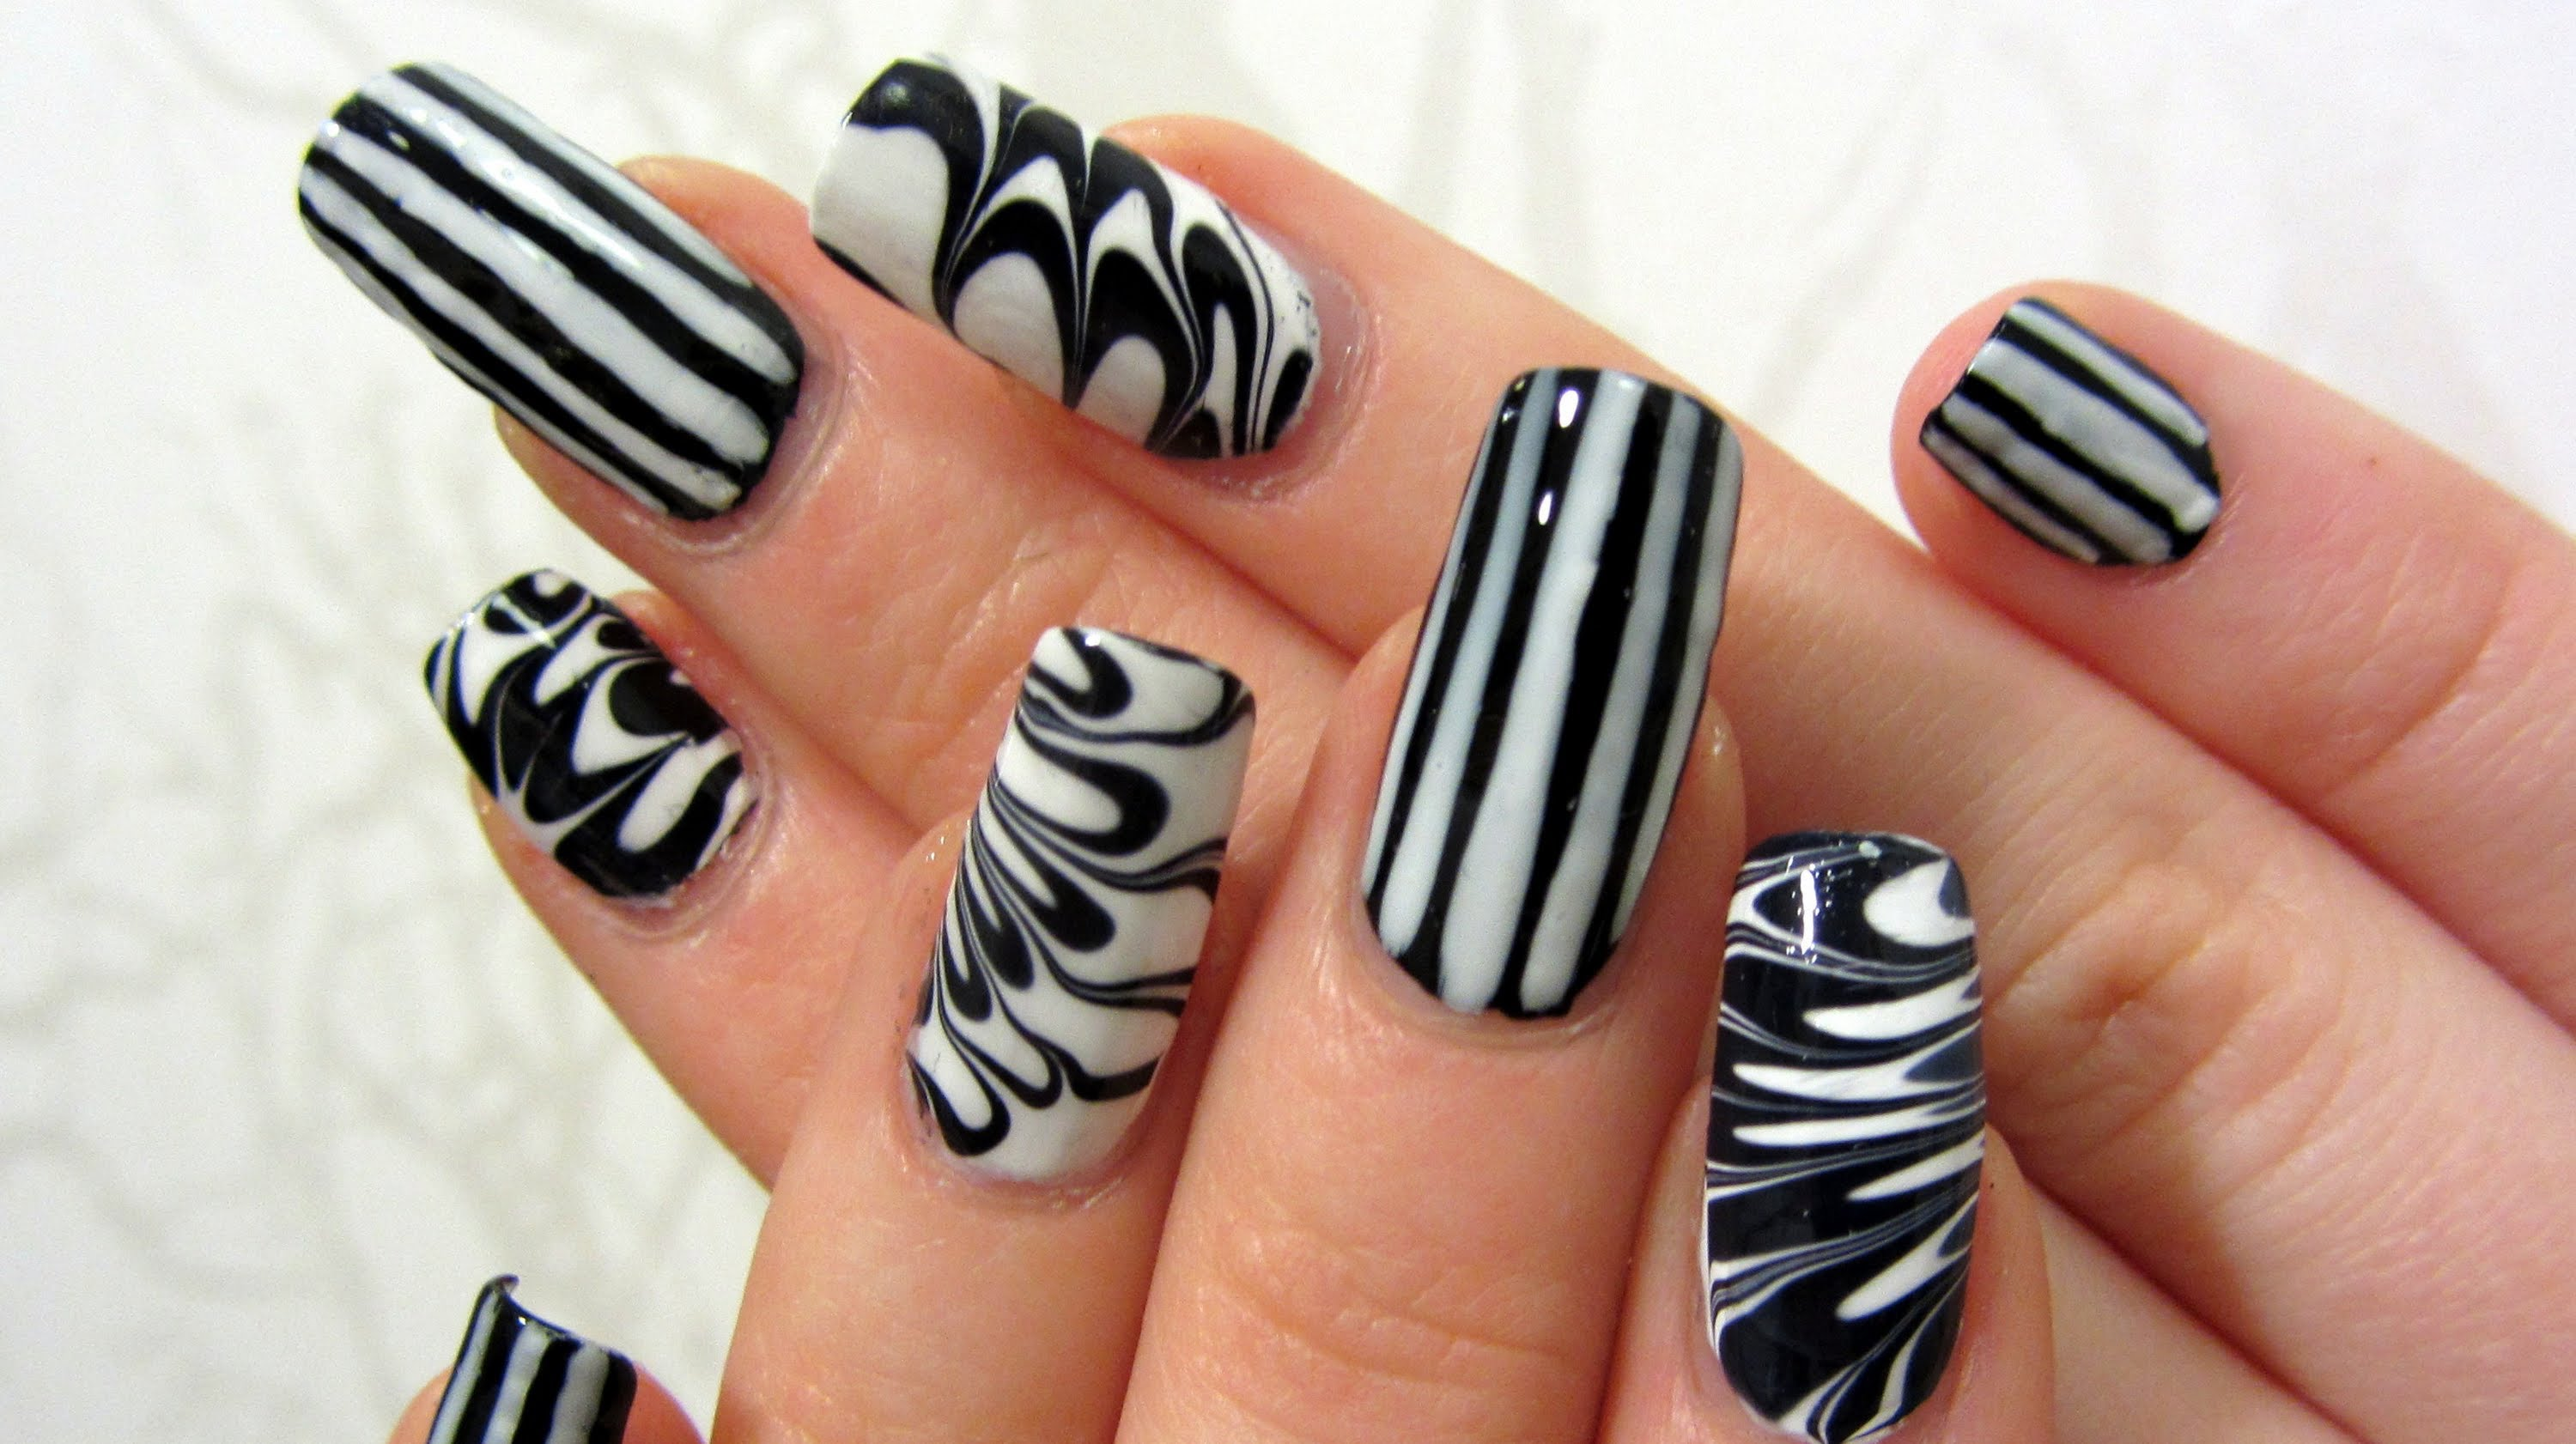 Black and White Nail Art Ideas